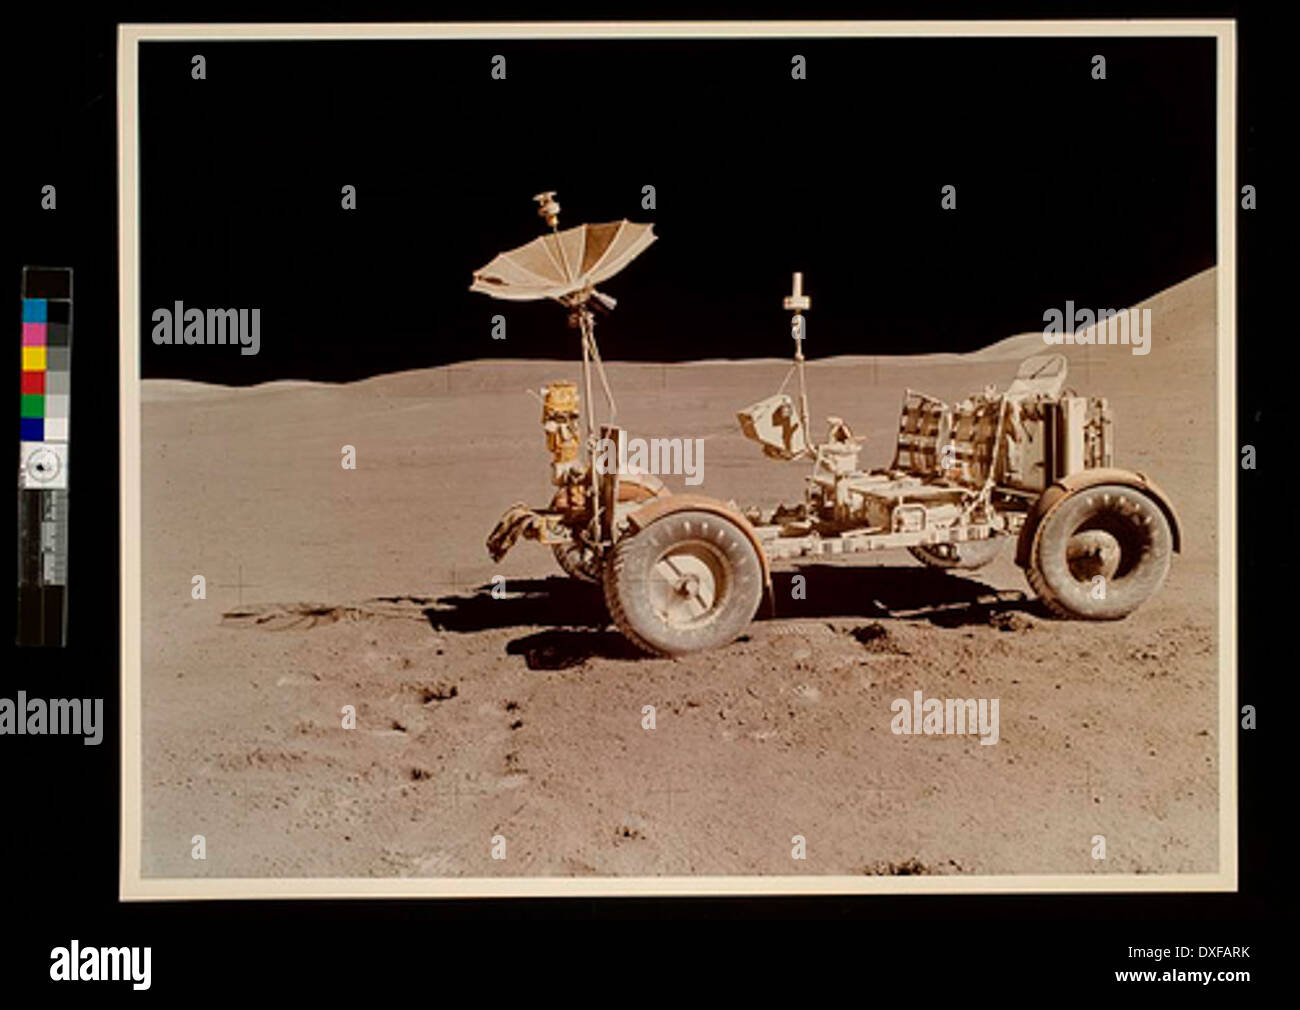 Lunar Roving Vehicle (LRV) during the Apollo 15 mission, July, 1971 - Stock Image